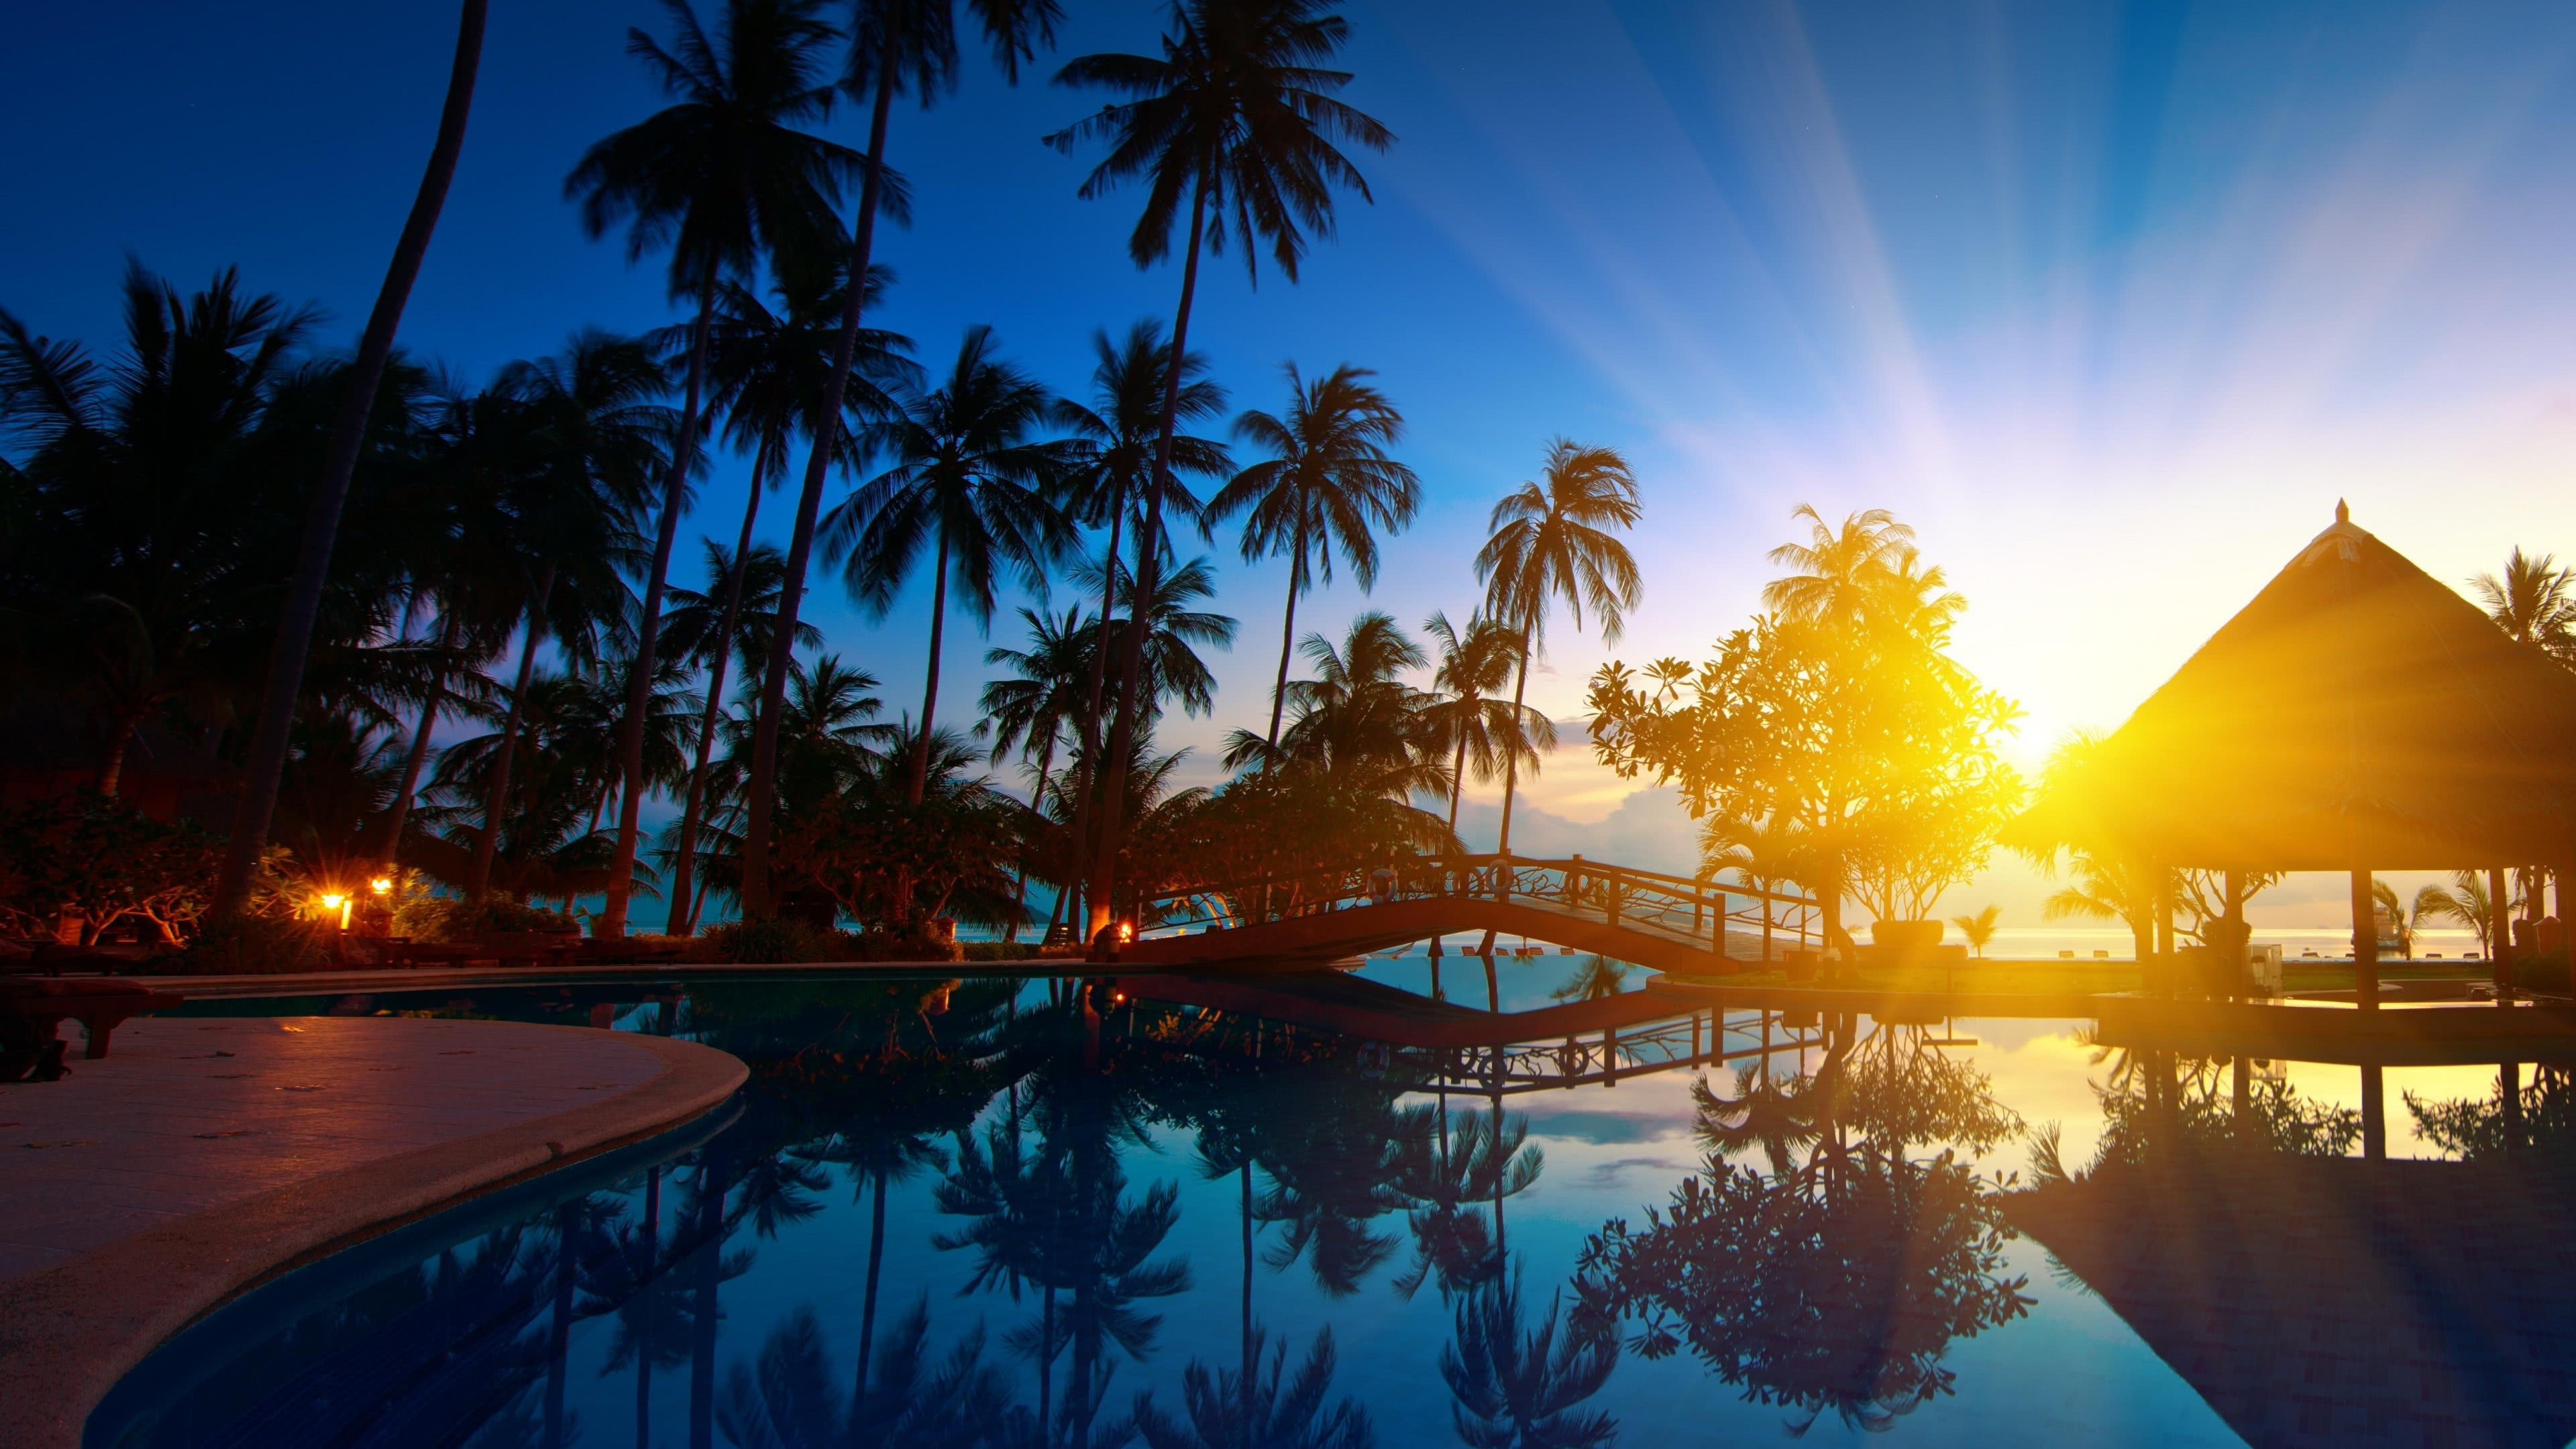 resort pool sunset thailand uhd 4k wallpaper